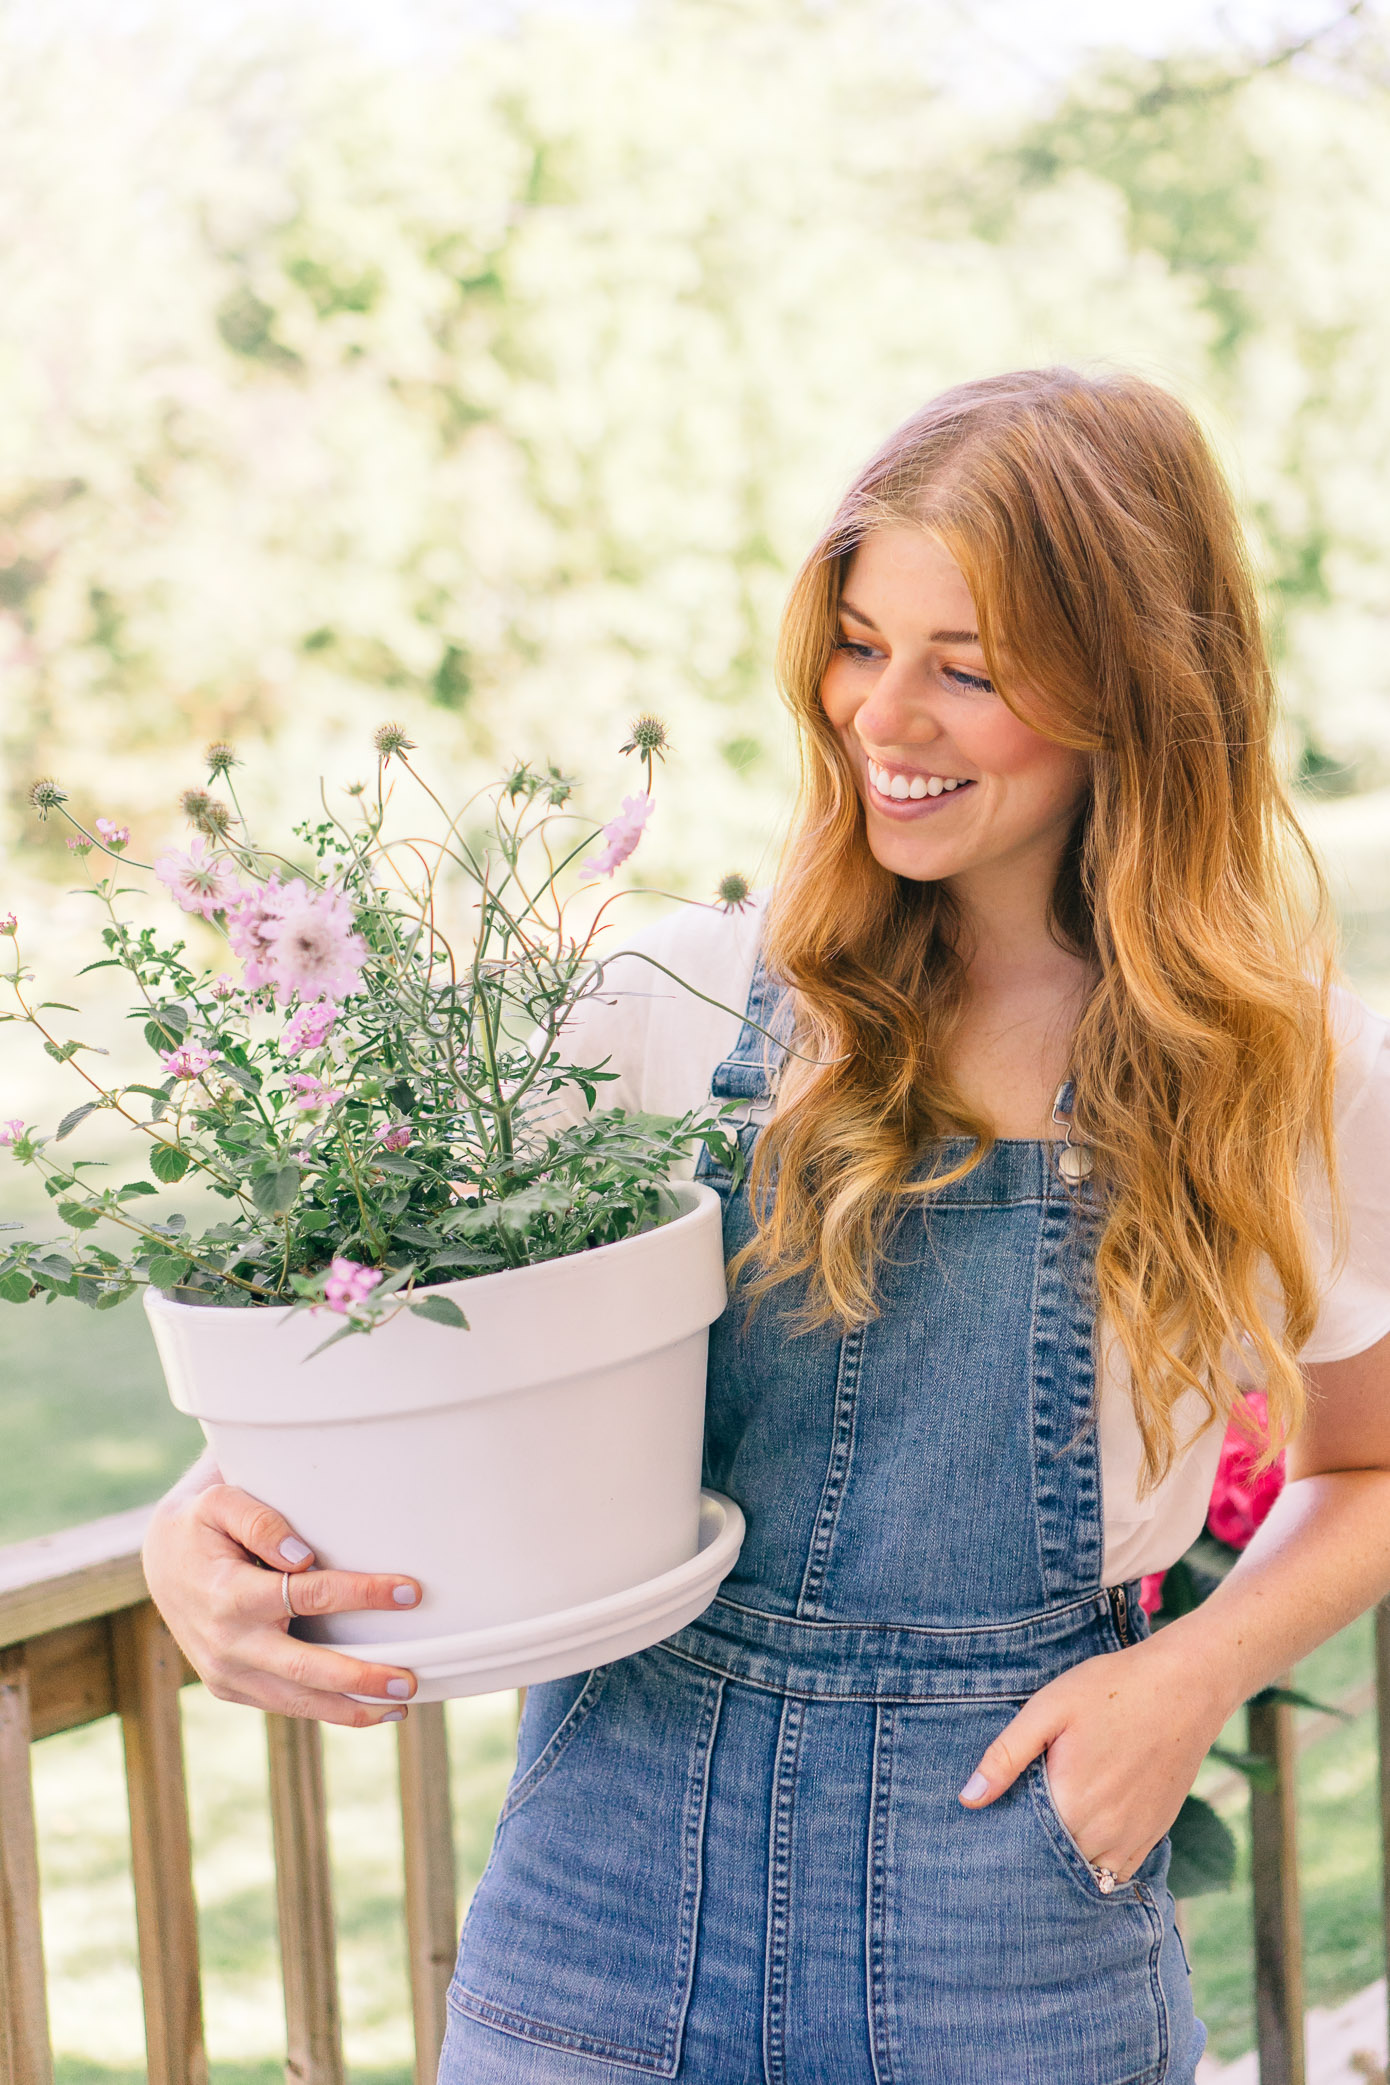 Update Your Outdoor Space with Potted Plants, Harvest Organics Soil | Louella Reese Life & Style Blog